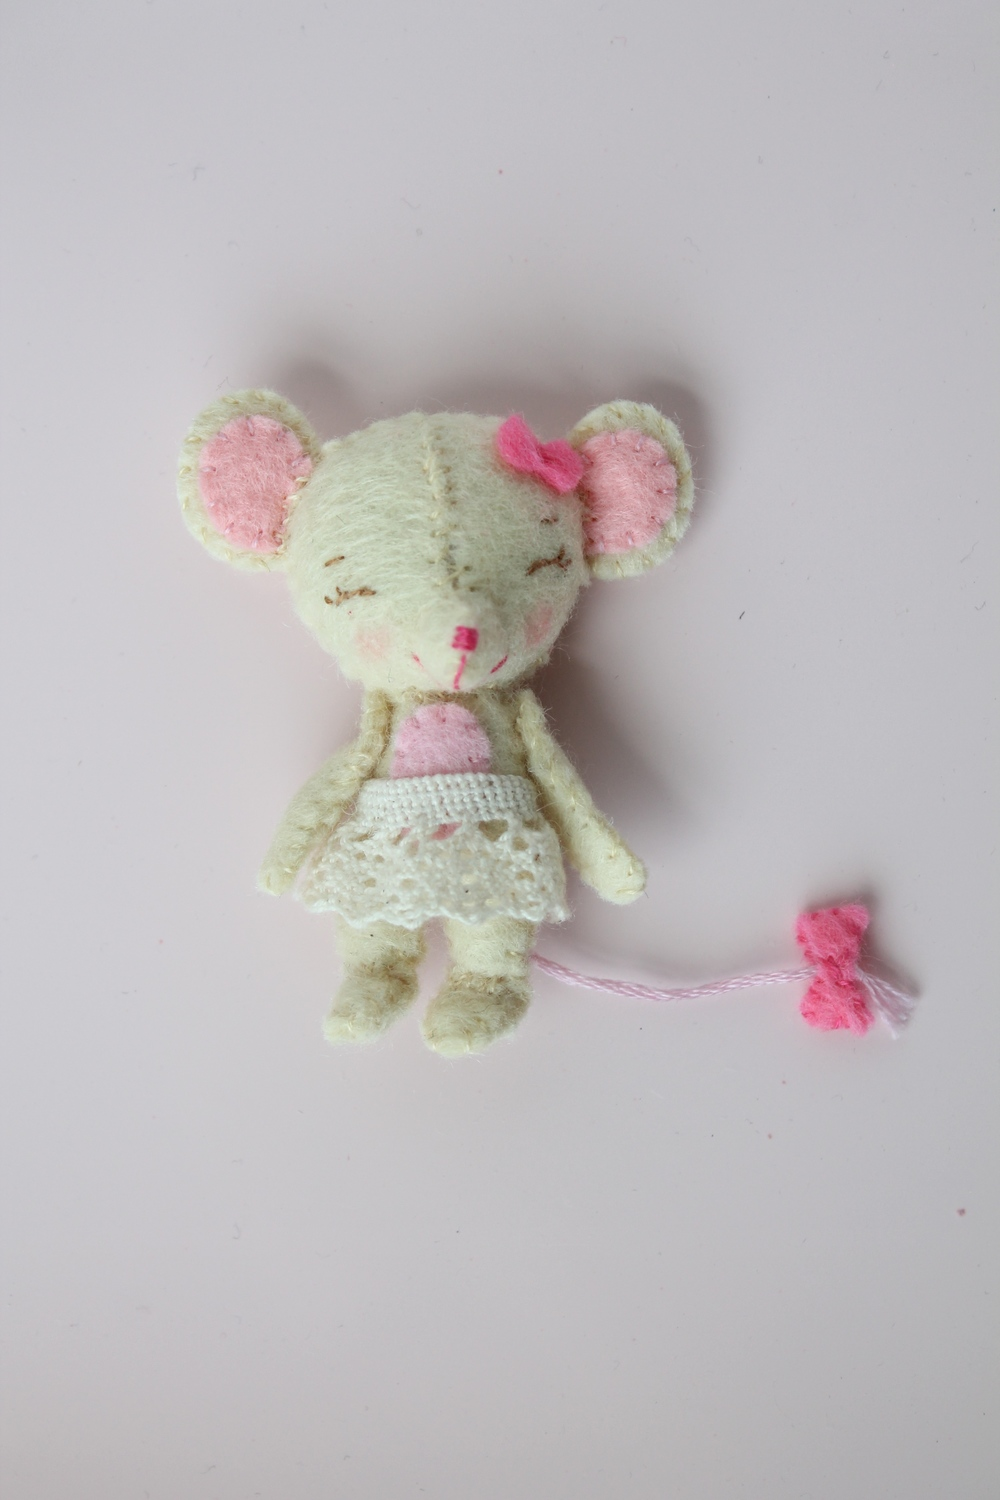 Adorable little hand sewn felt mouse. Pattern from Gingermelon ETSY shop.